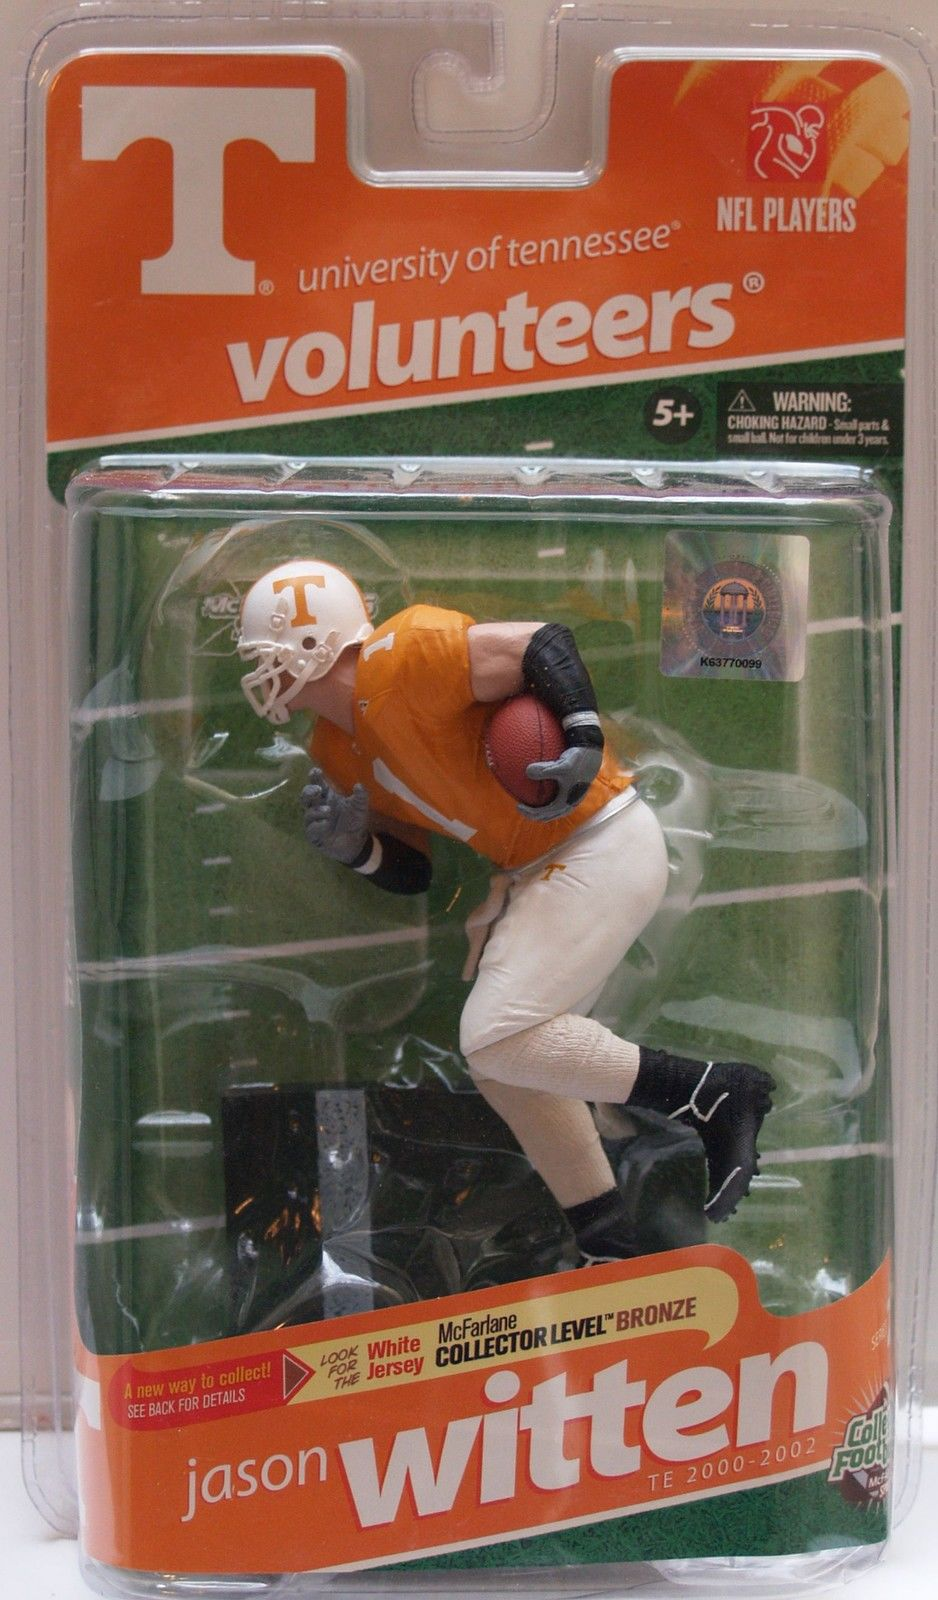 McFARLANE SPORTS COLLEGE ACTION FIGURE - JASON WITTEN #1 UT VOLUNTEERS